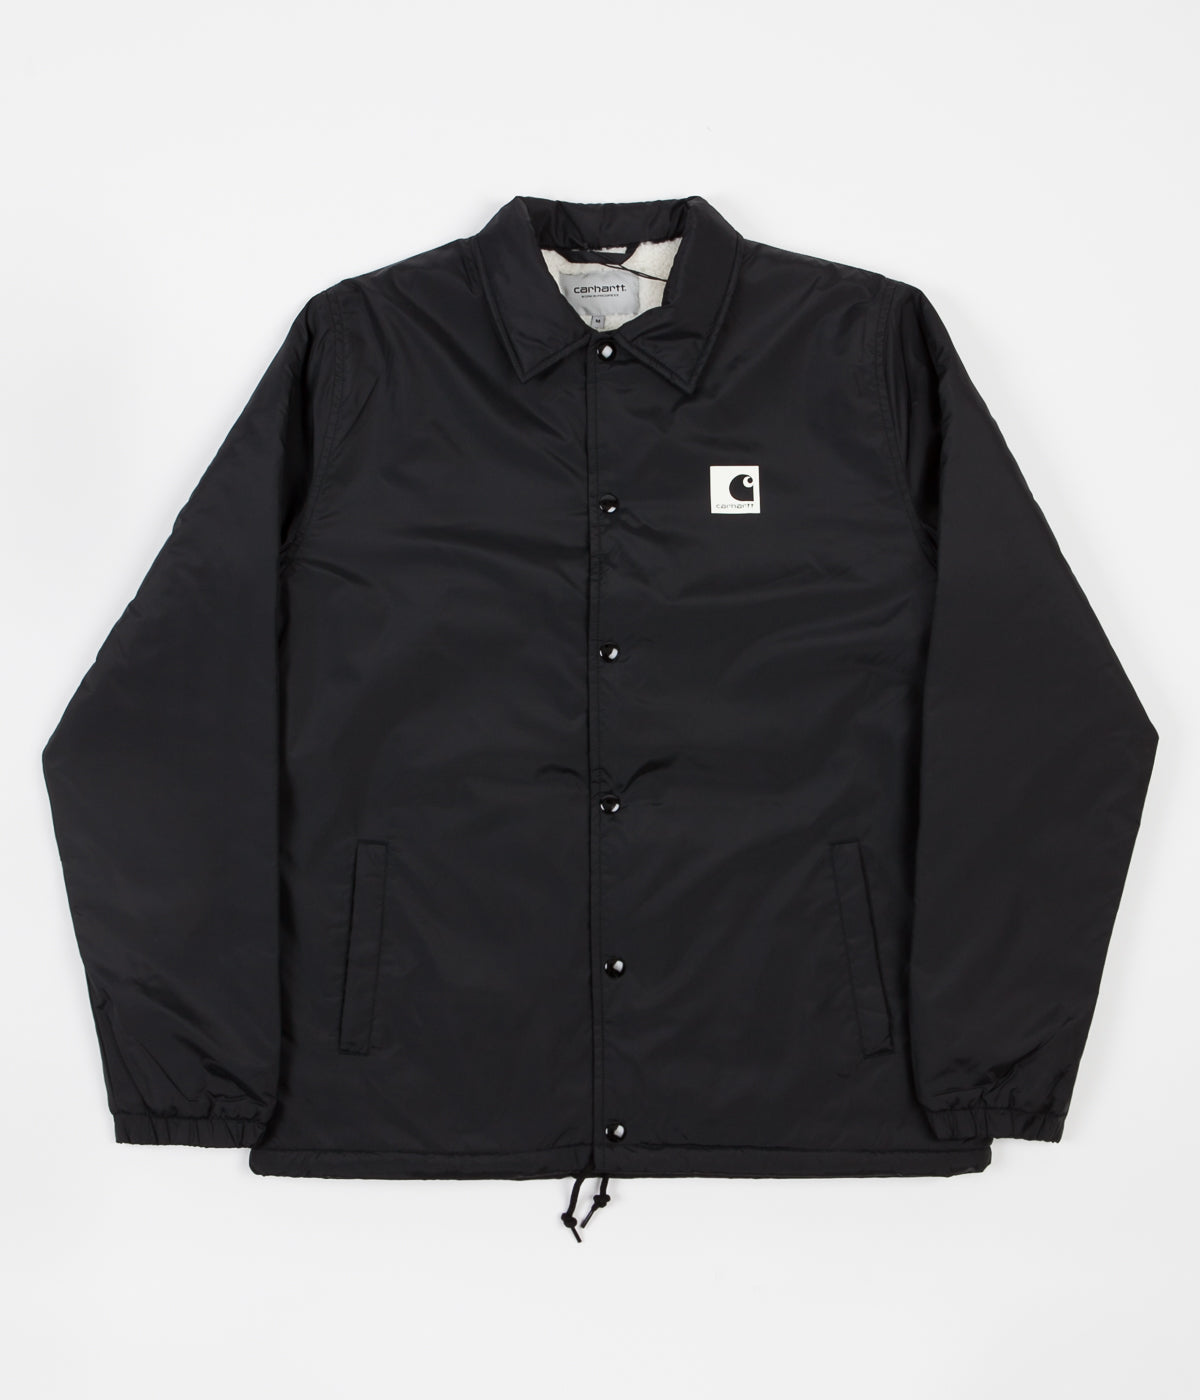 Carhartt Sports Pile Coach Jacket - Black